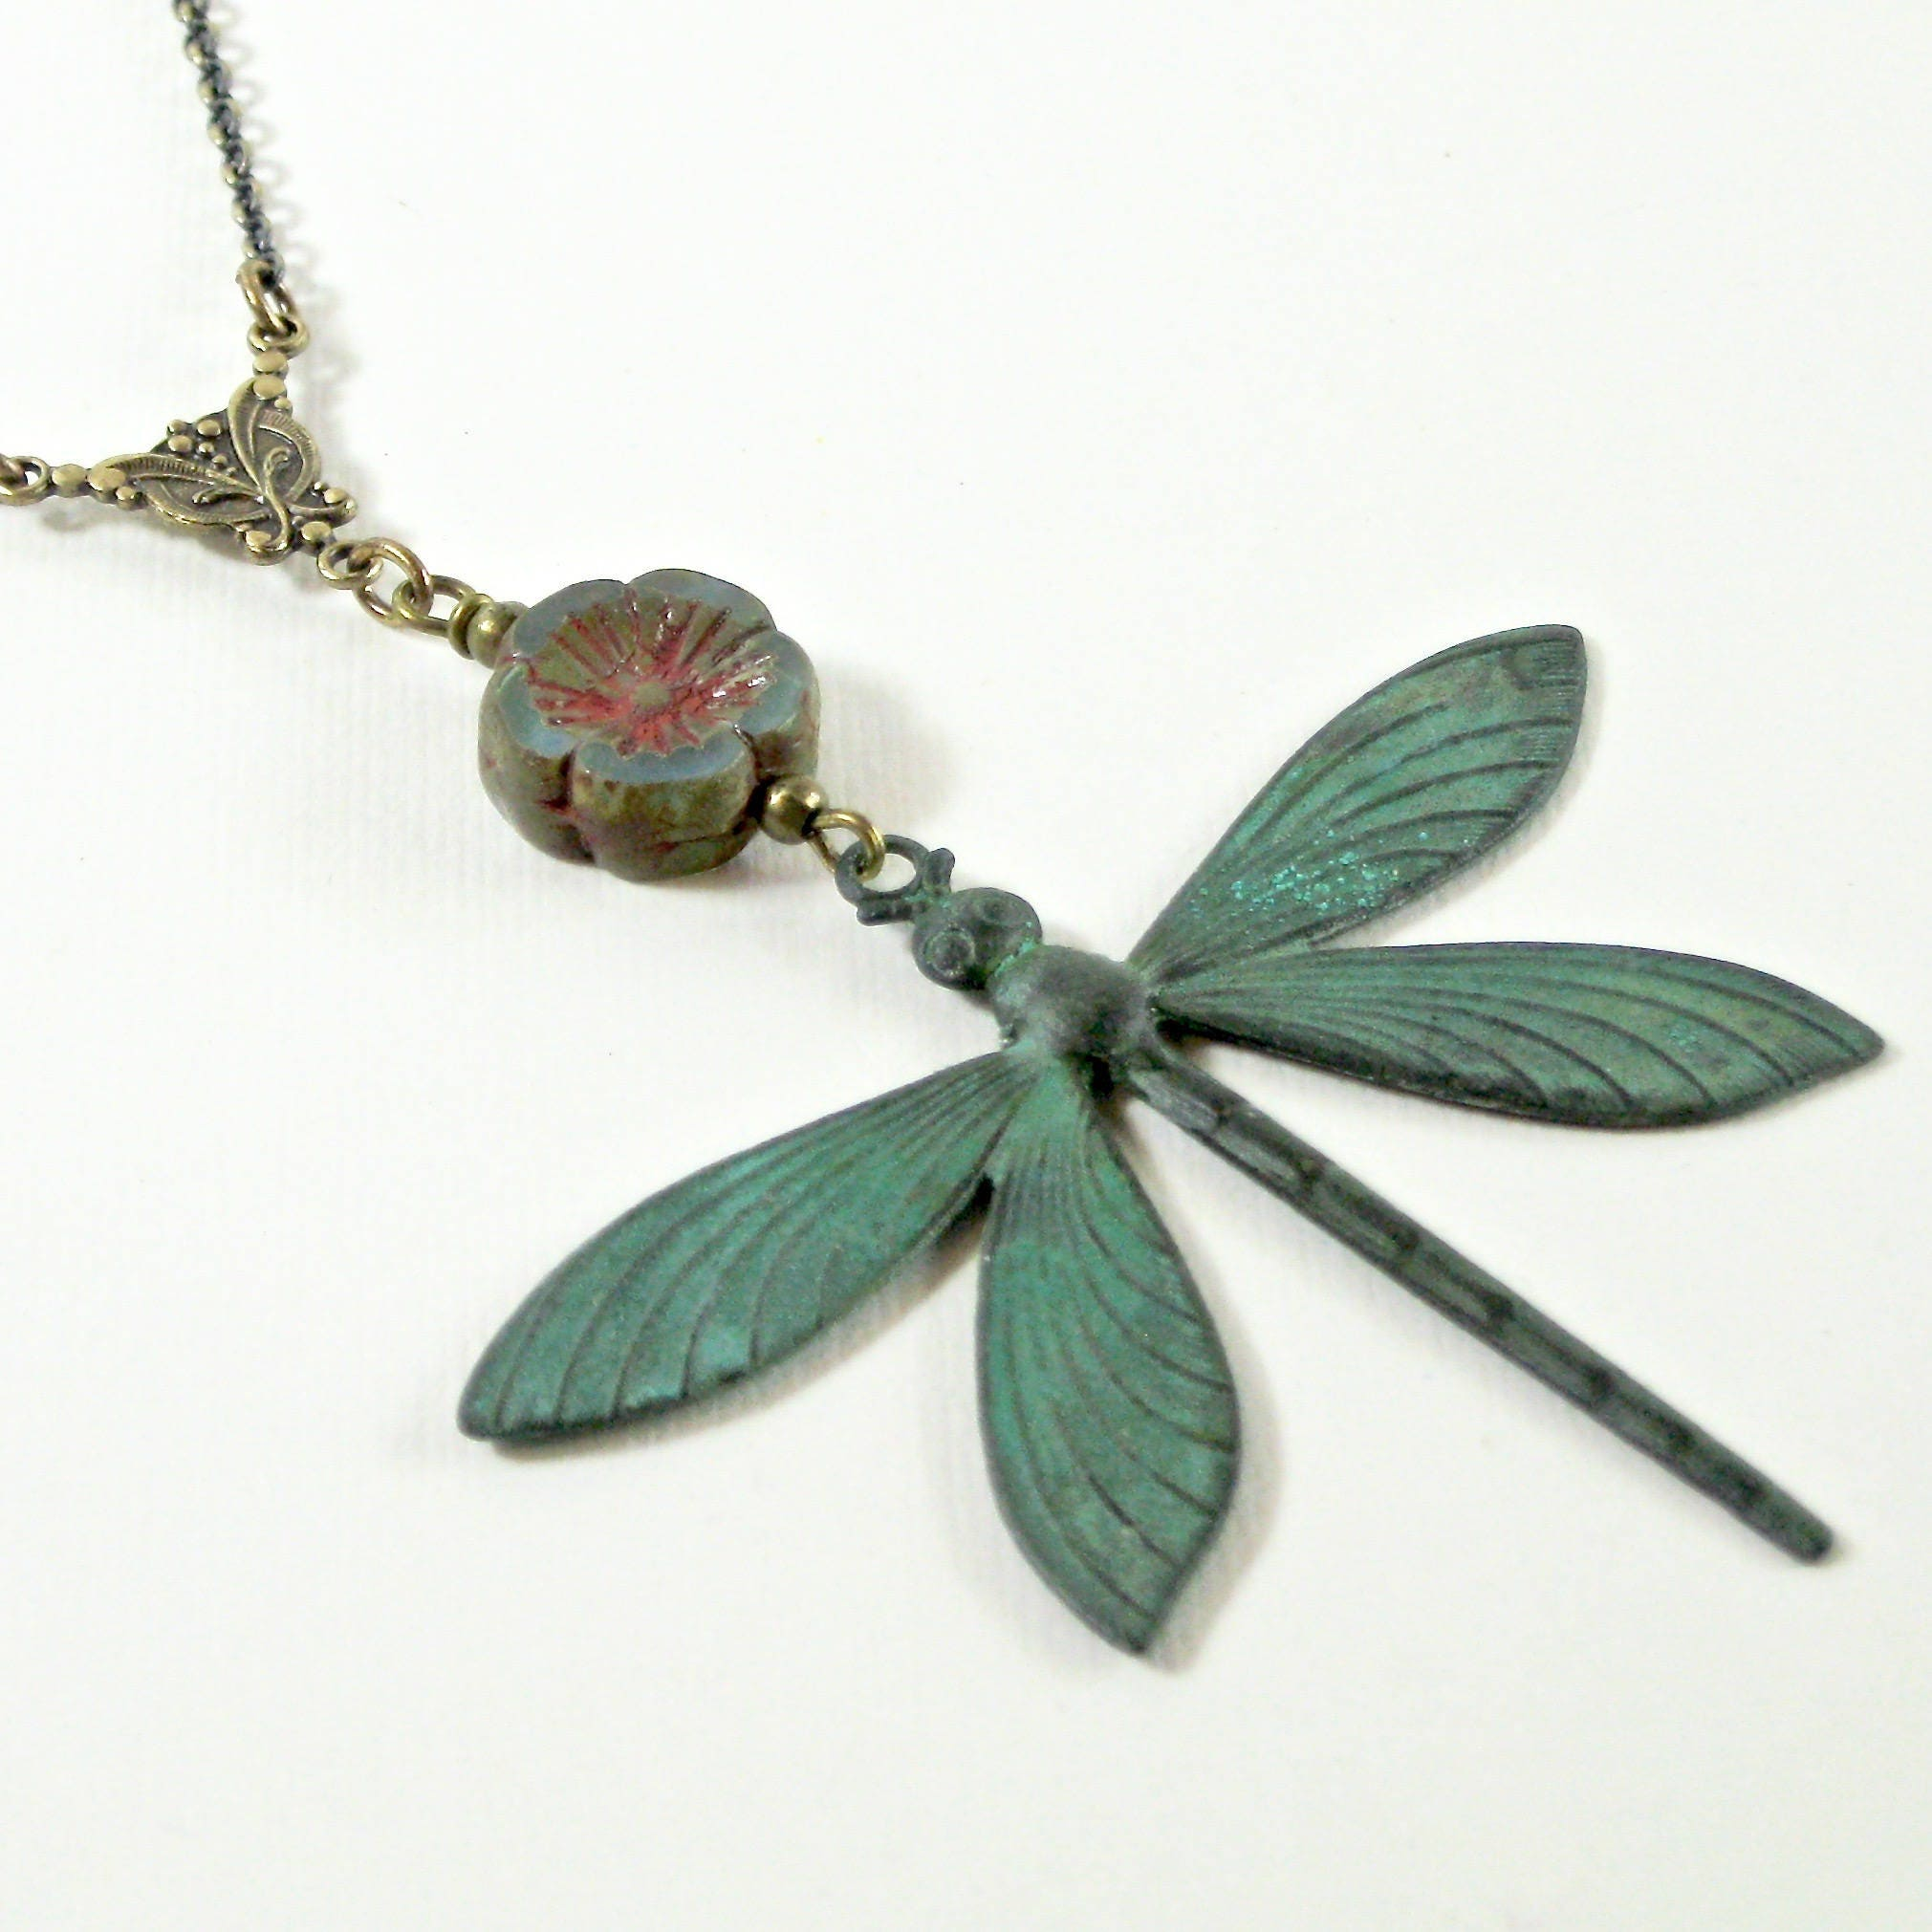 elizabeth horn bont nouveau shop company the antique dragonfly art pendant bonte jewellery